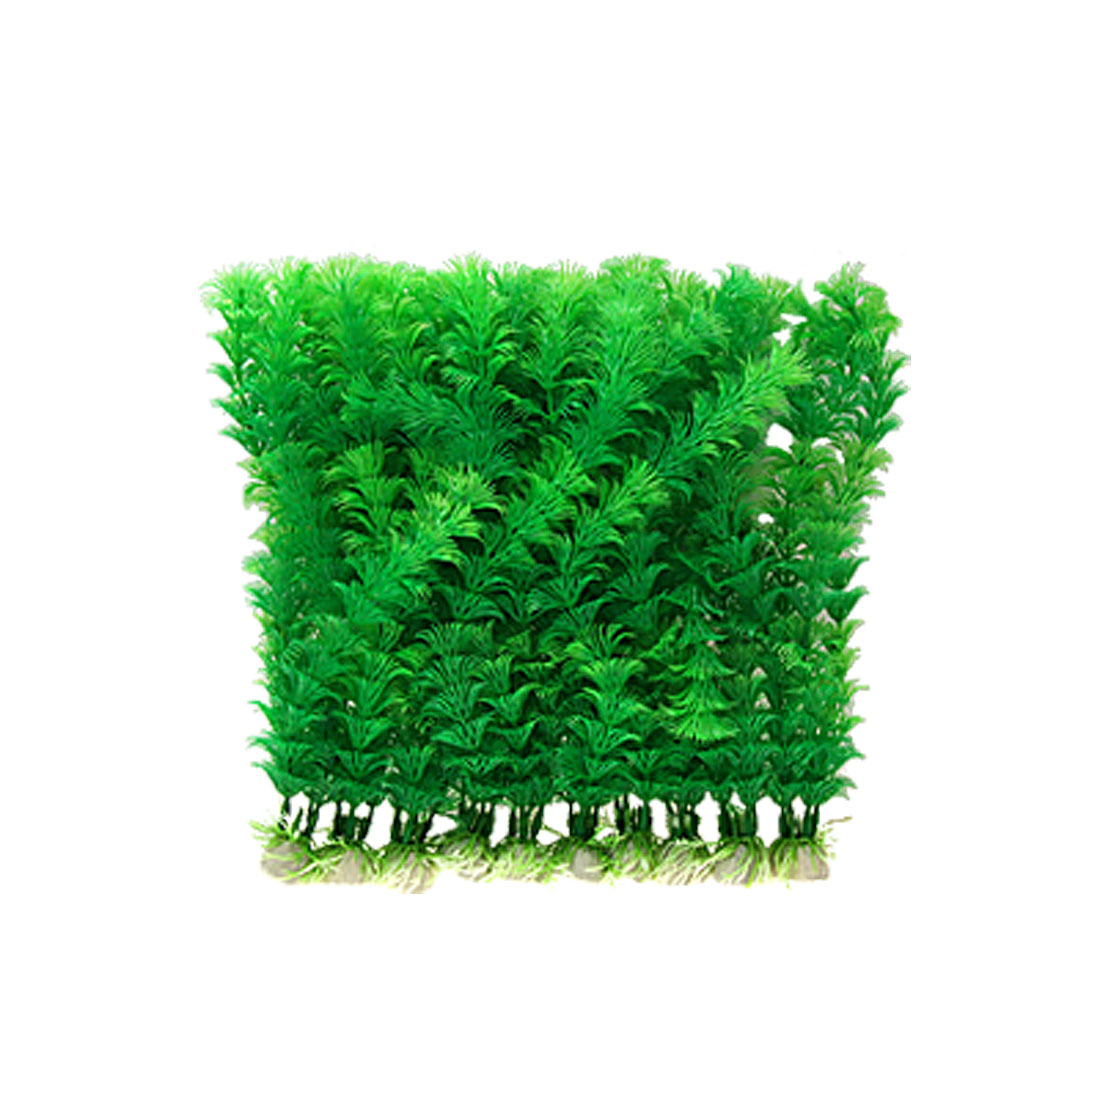 10 PCS Green Plastic Plants Aquarium Fish Tank Ornament